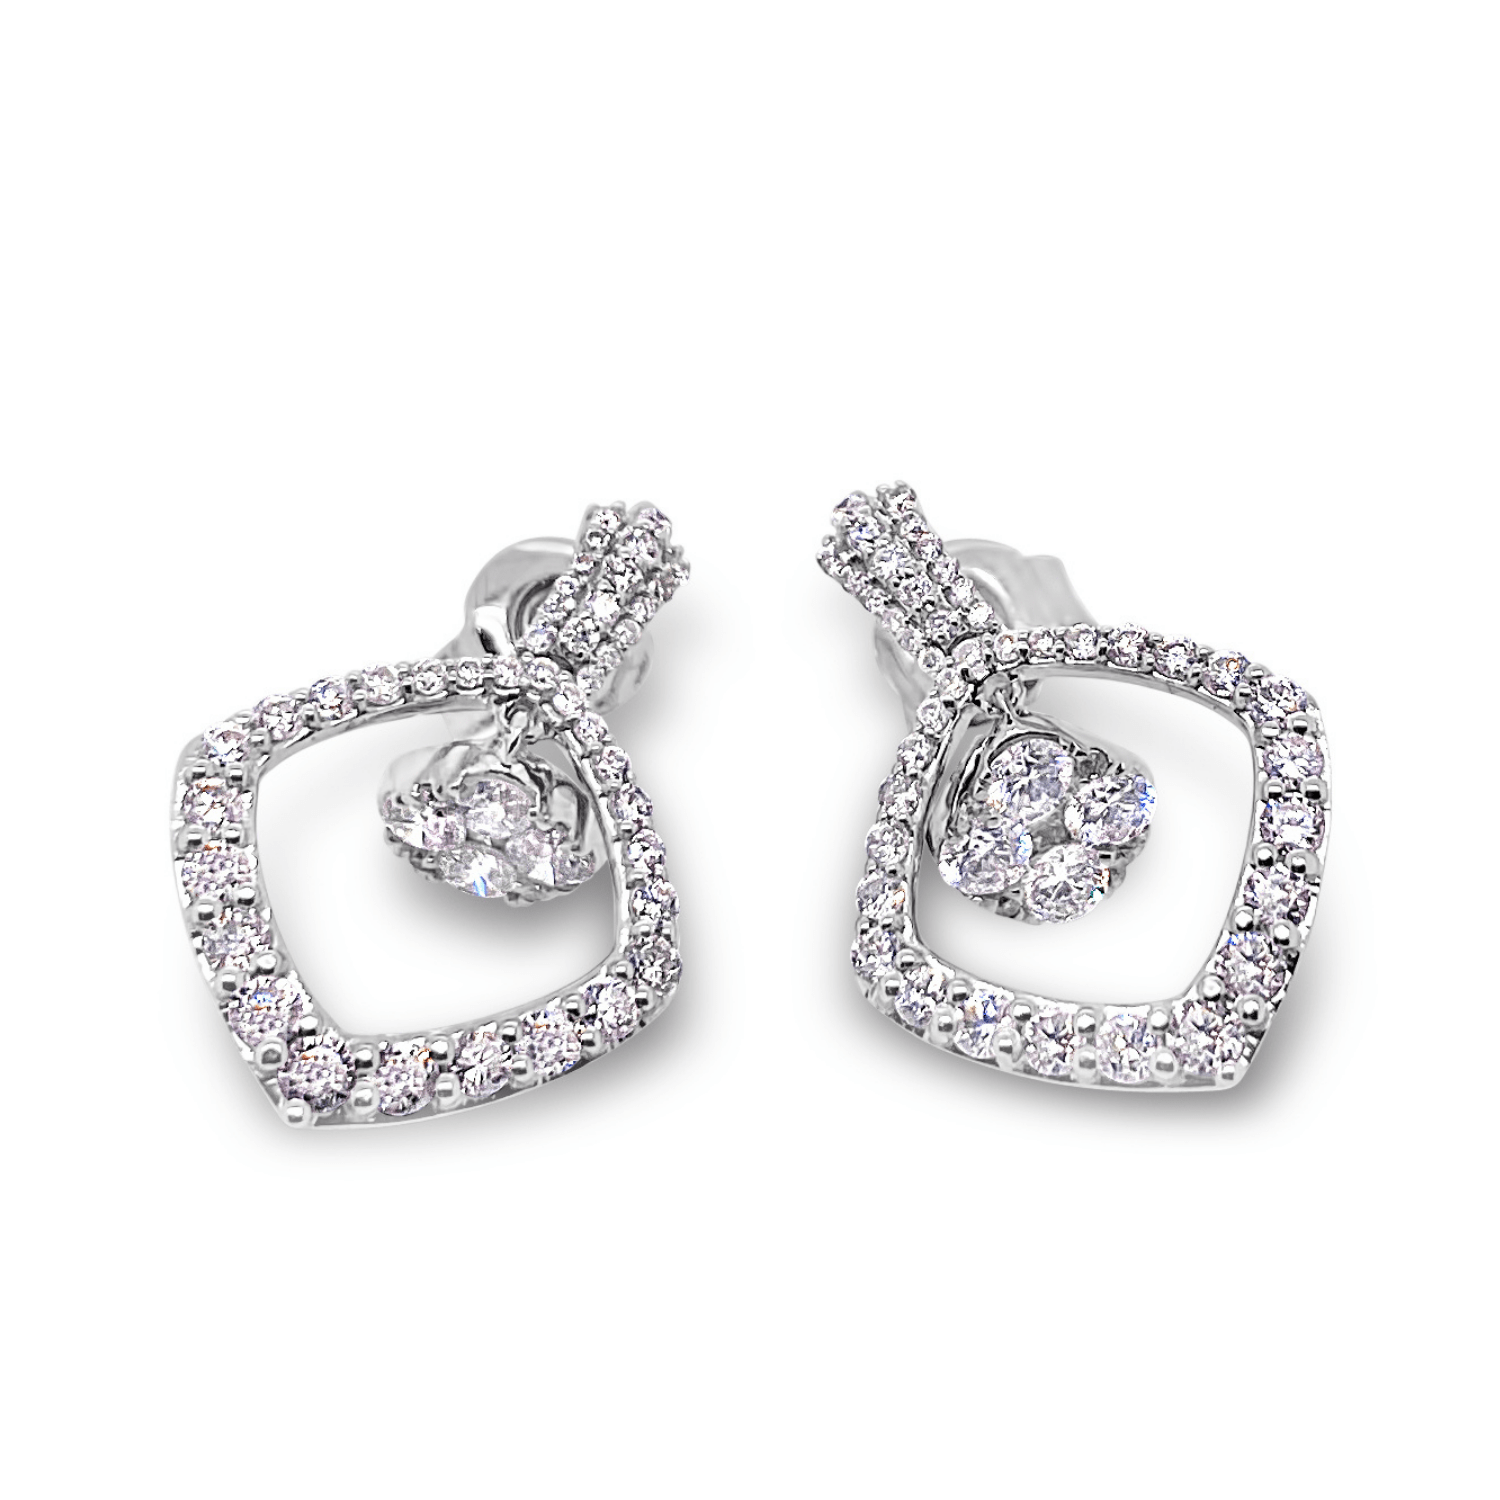 Smales Taj White Gold and Diamond Earrings